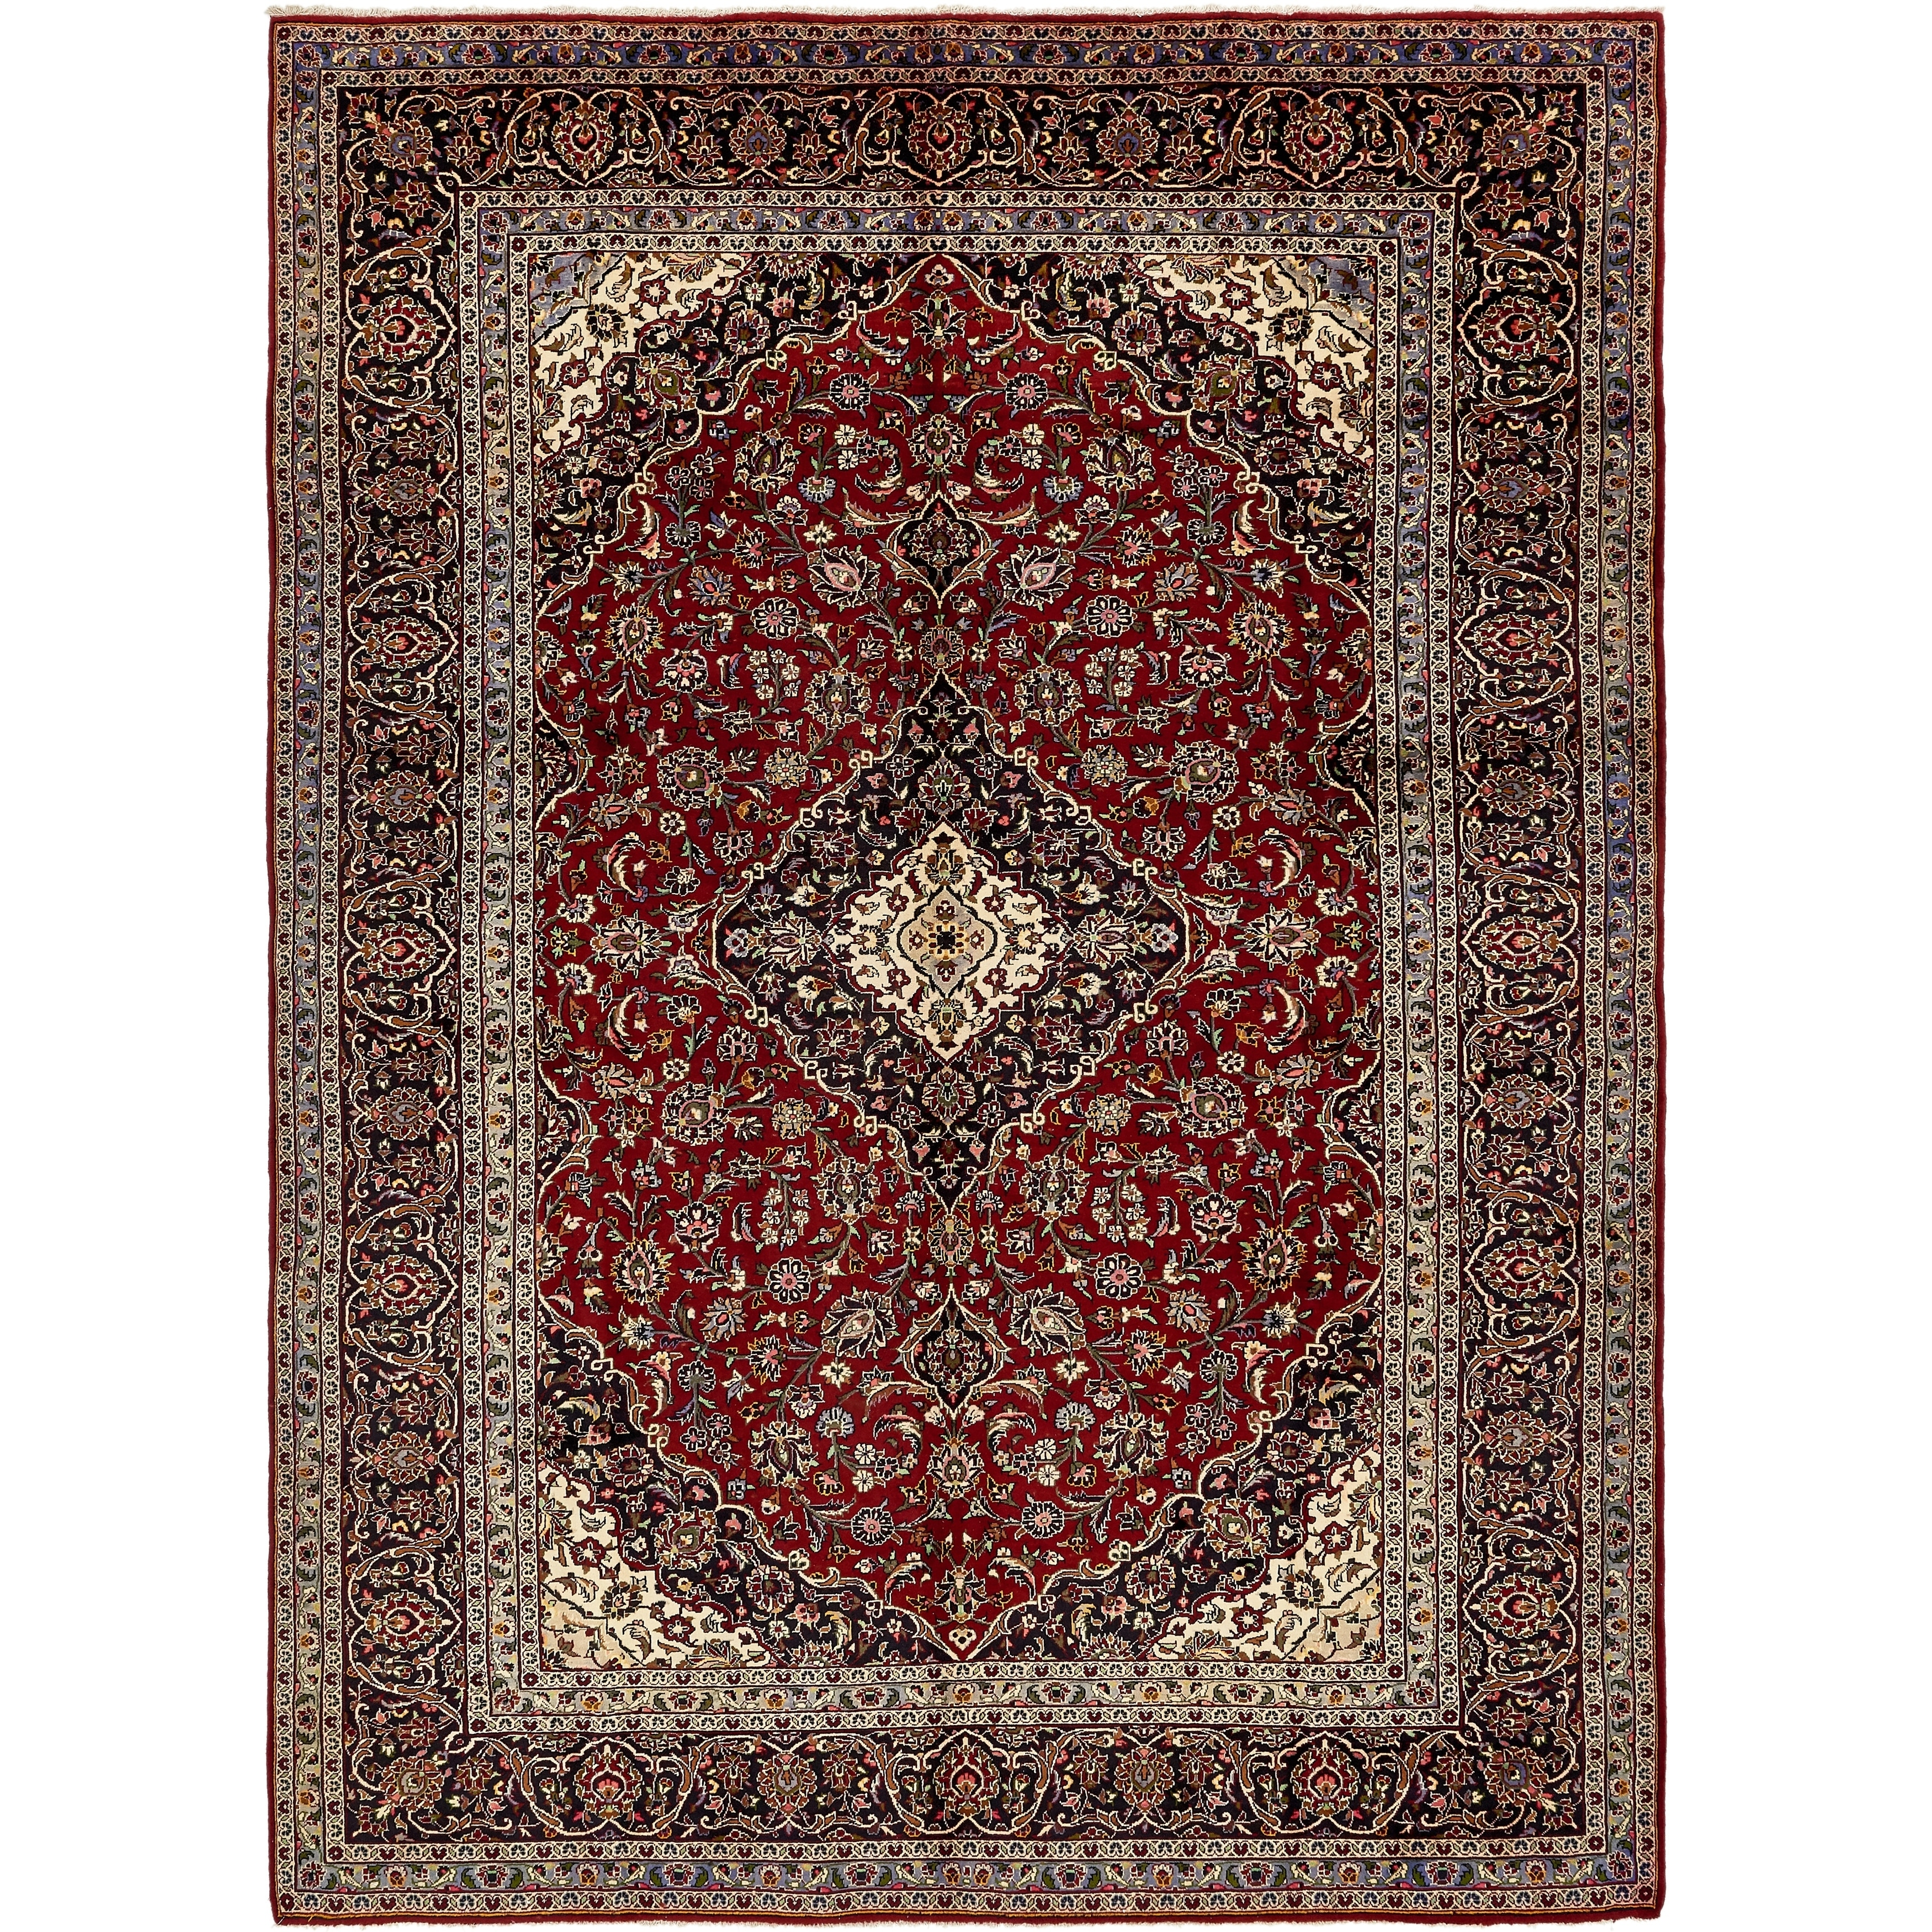 Hand Knotted Kashan Wool Area Rug - 9' 9 x 13' 5 (Red - 9' 9 x 13' 5)